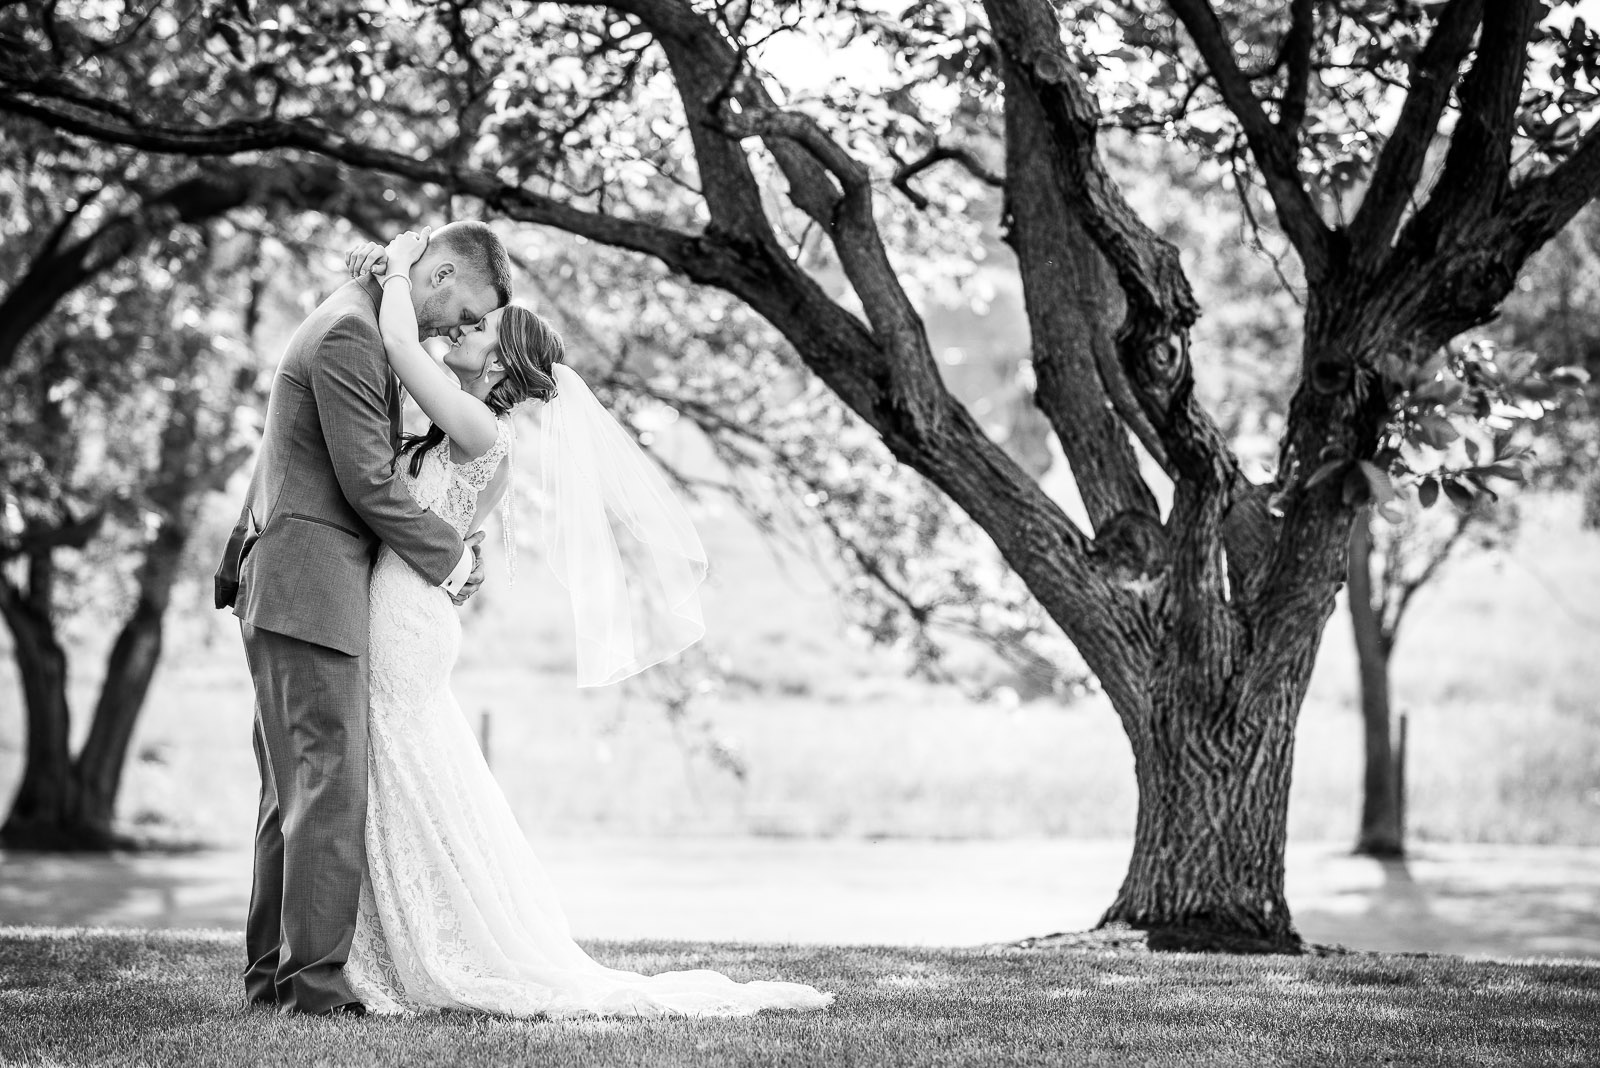 Eric_and_Christy_Photography_Blog_2016_Best_Wedding_Portraits-9